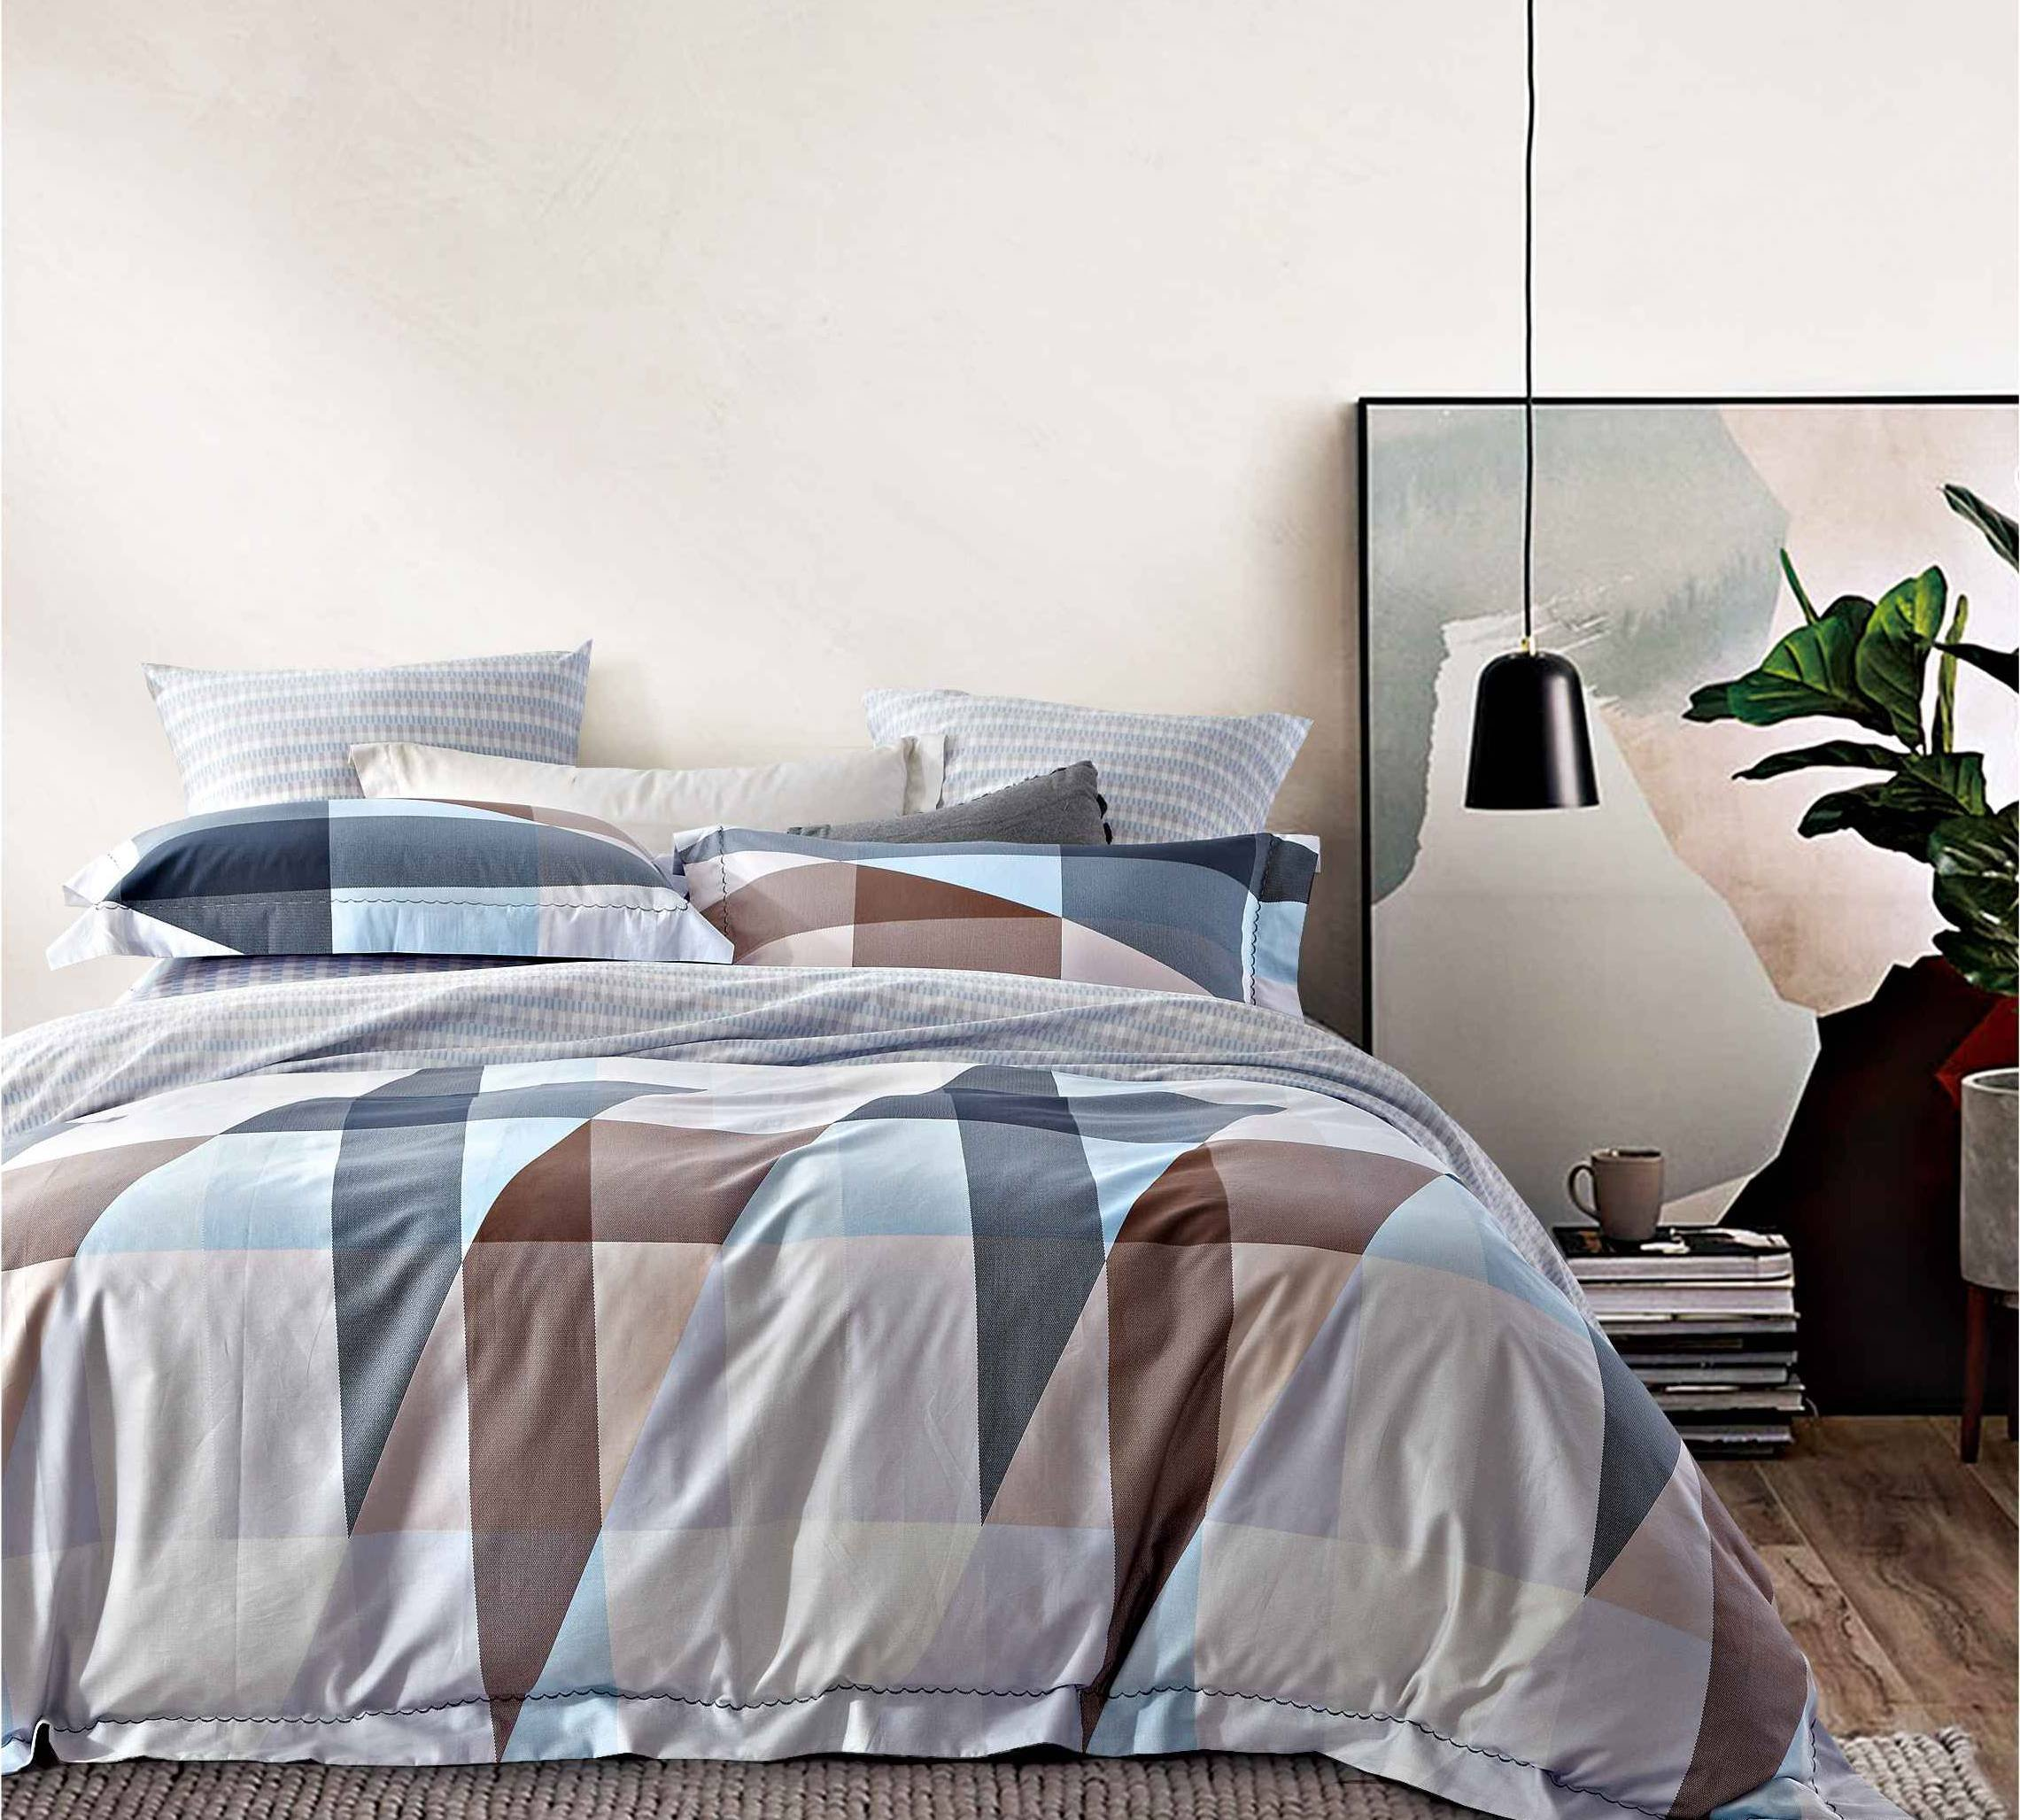 Find Simple Printed Long Staple Cotton Bedding Cotton Bedding Sets King